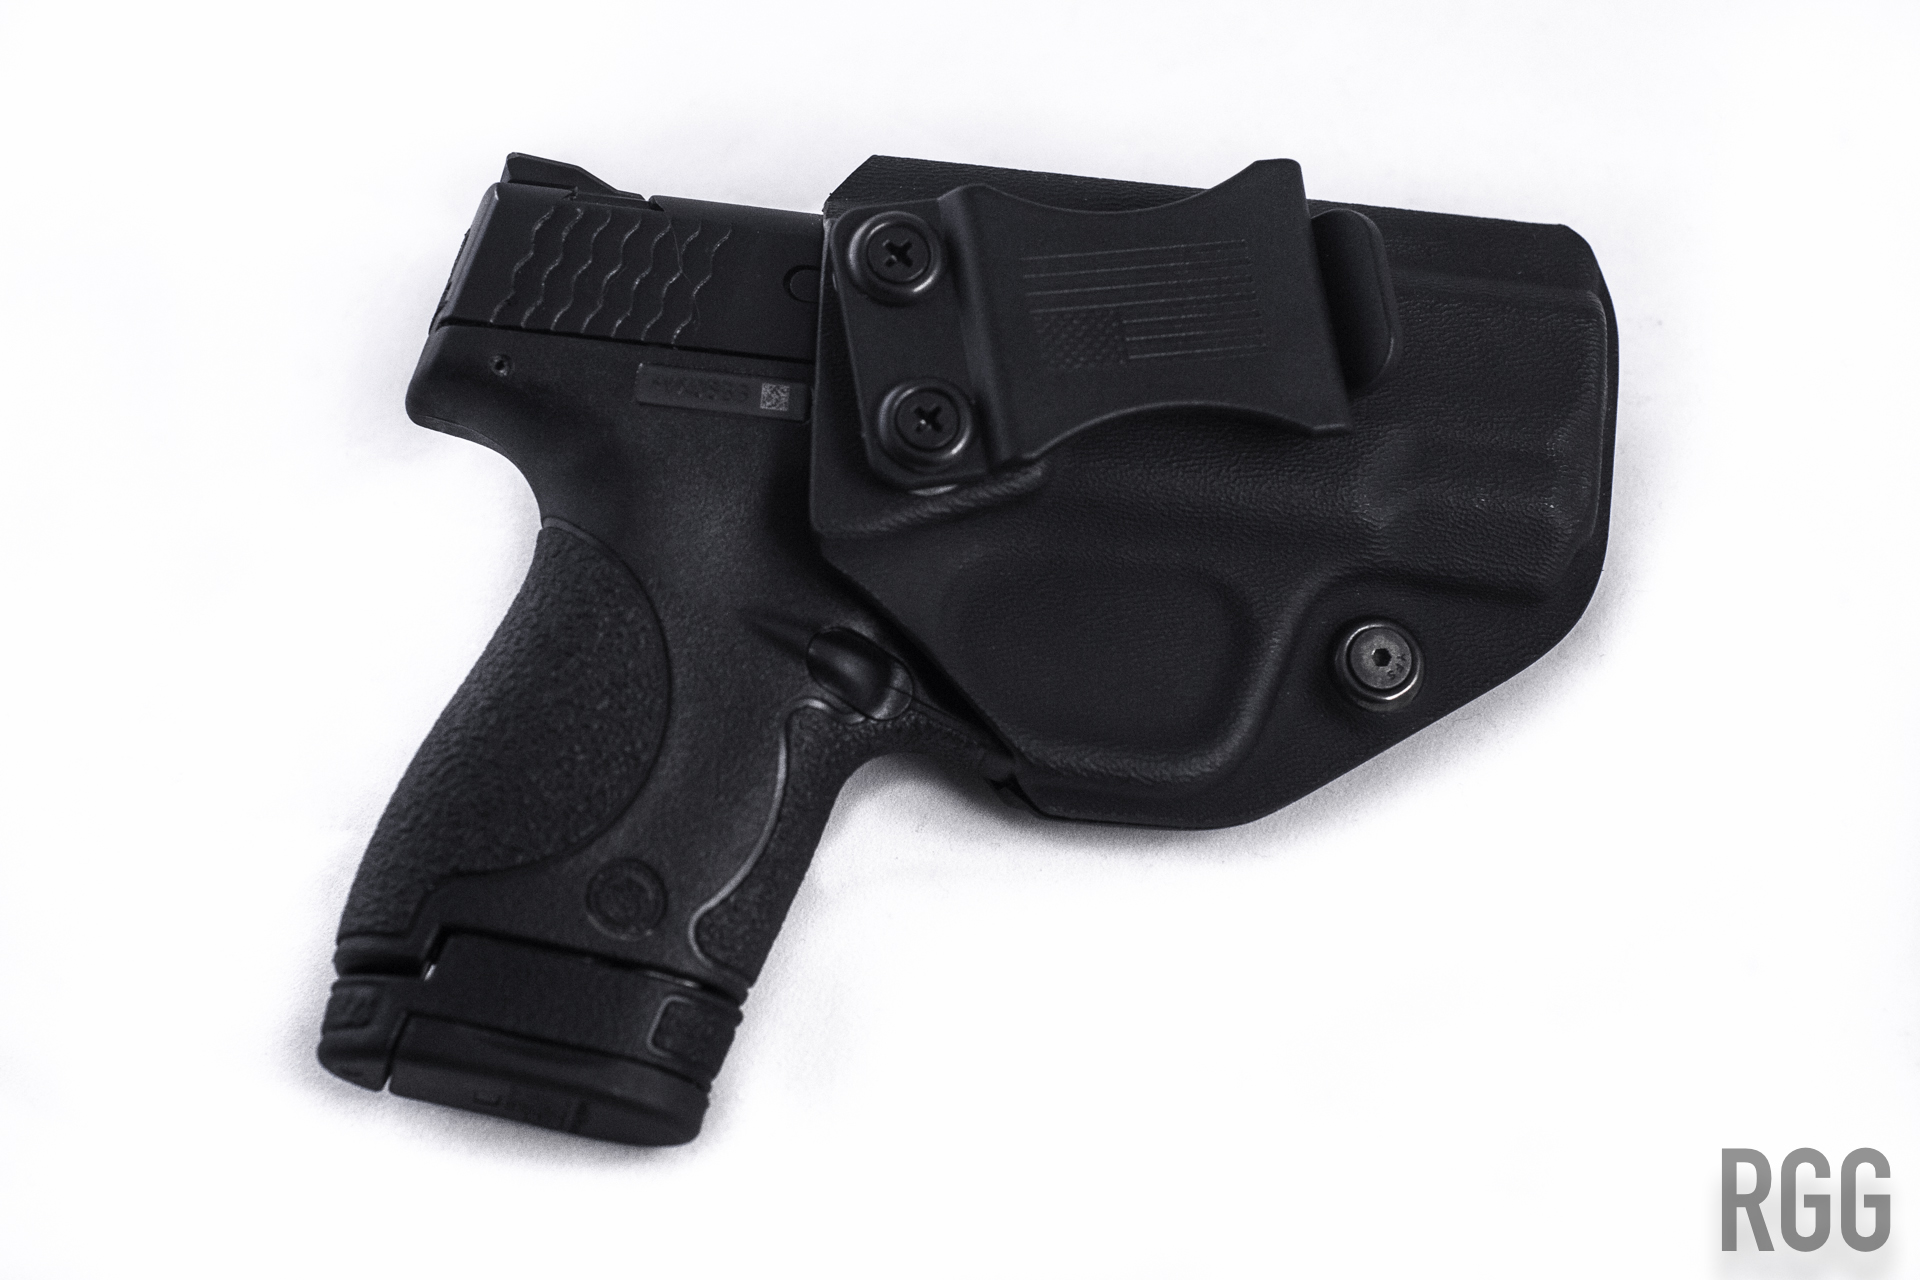 A custom Kydex holster for a Smith & Wesson M&P Shield 40